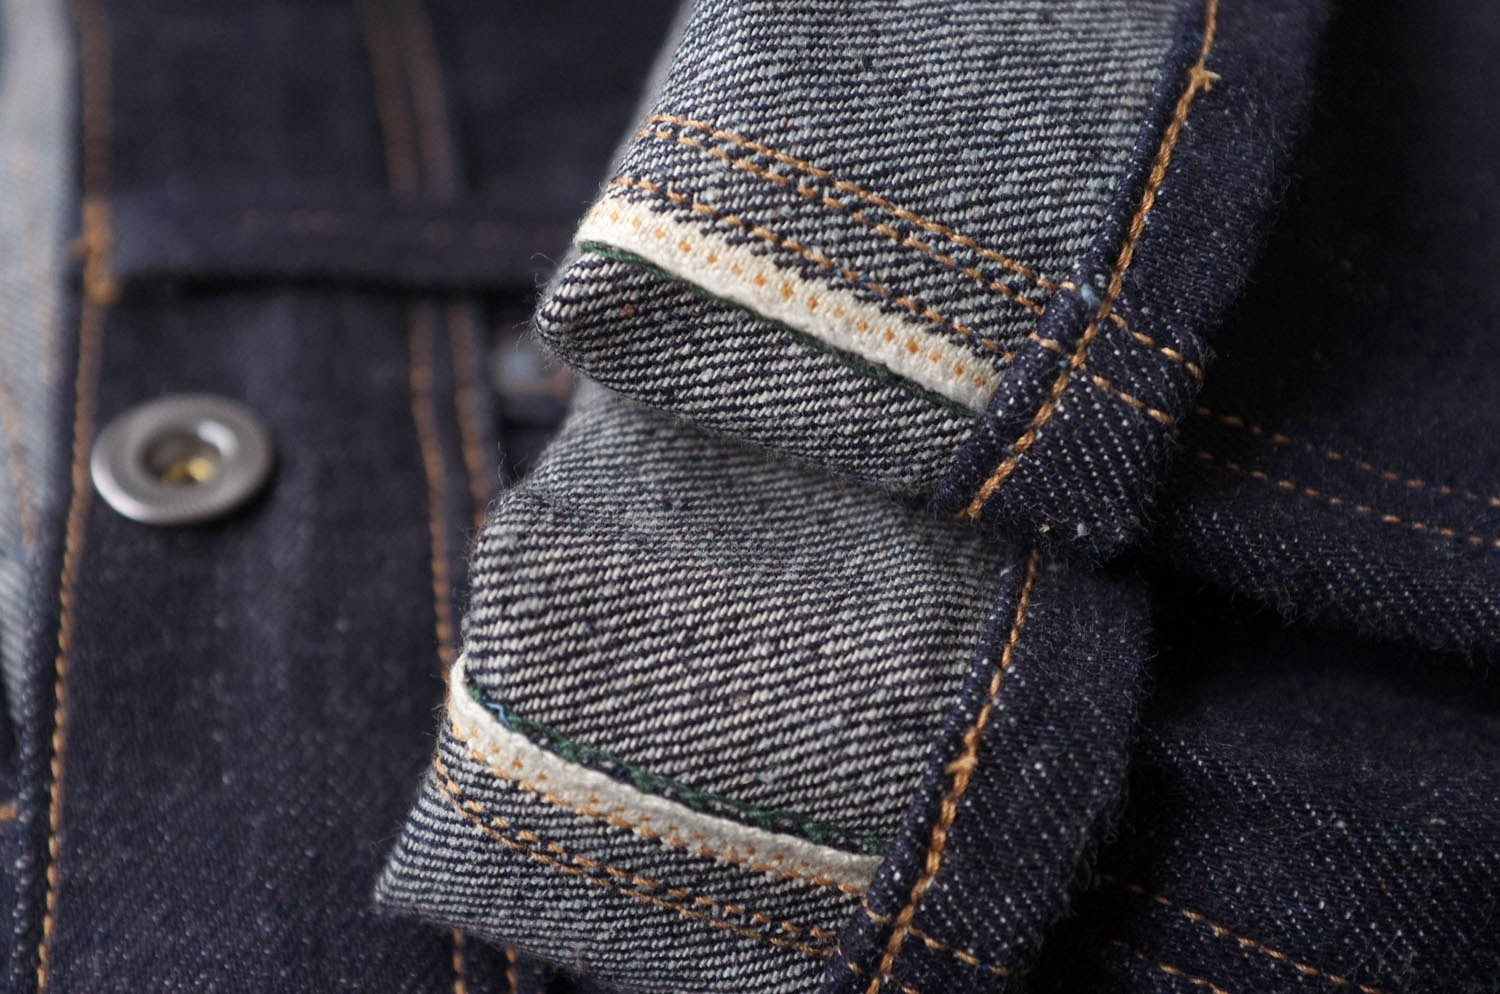 Brown-Duck & Digger 12.5 oz Rough Riders - felled seam detail